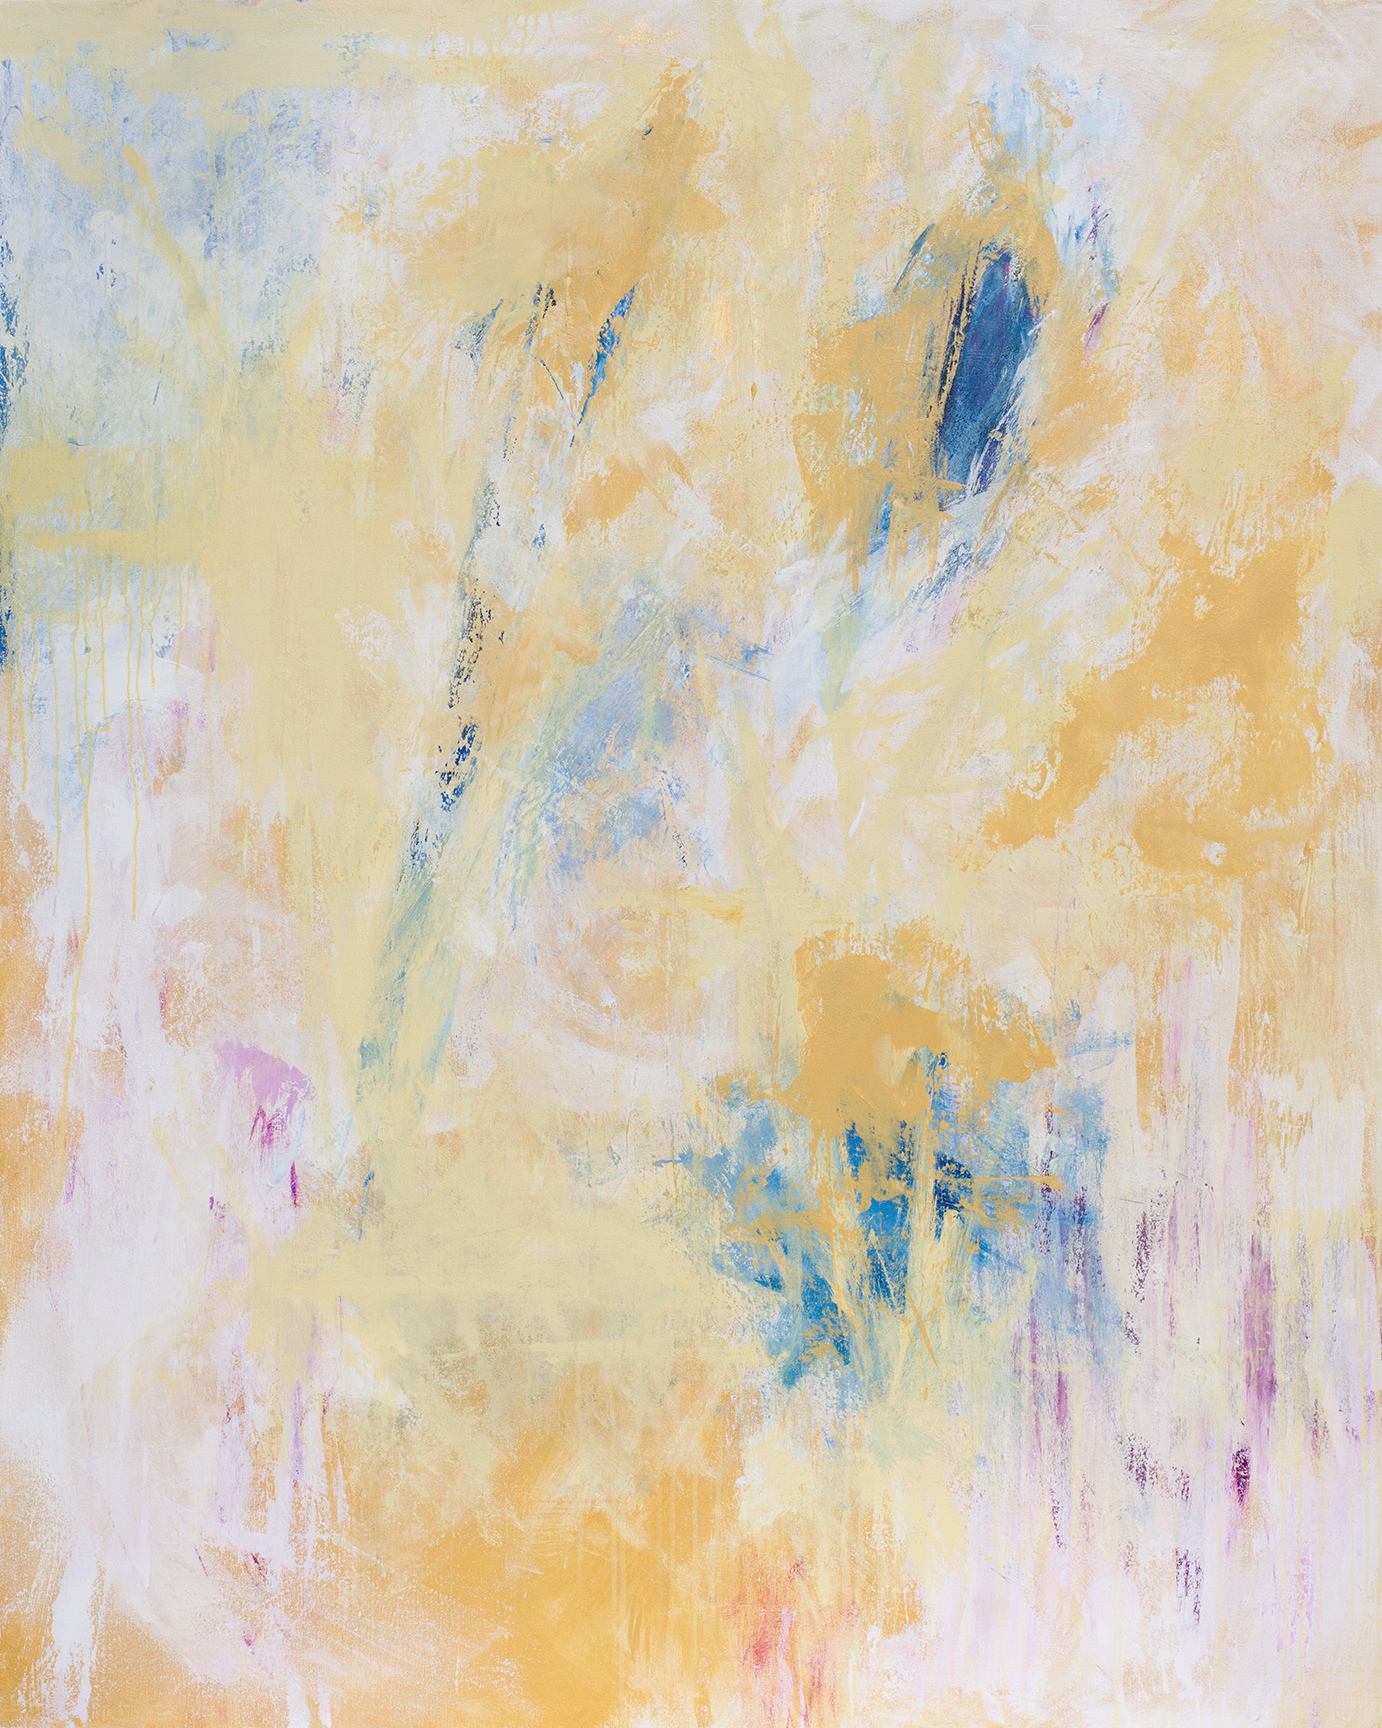 """Alchemy 2"" - 48"" x 60"" - acrylic on canvas mounted on panel"